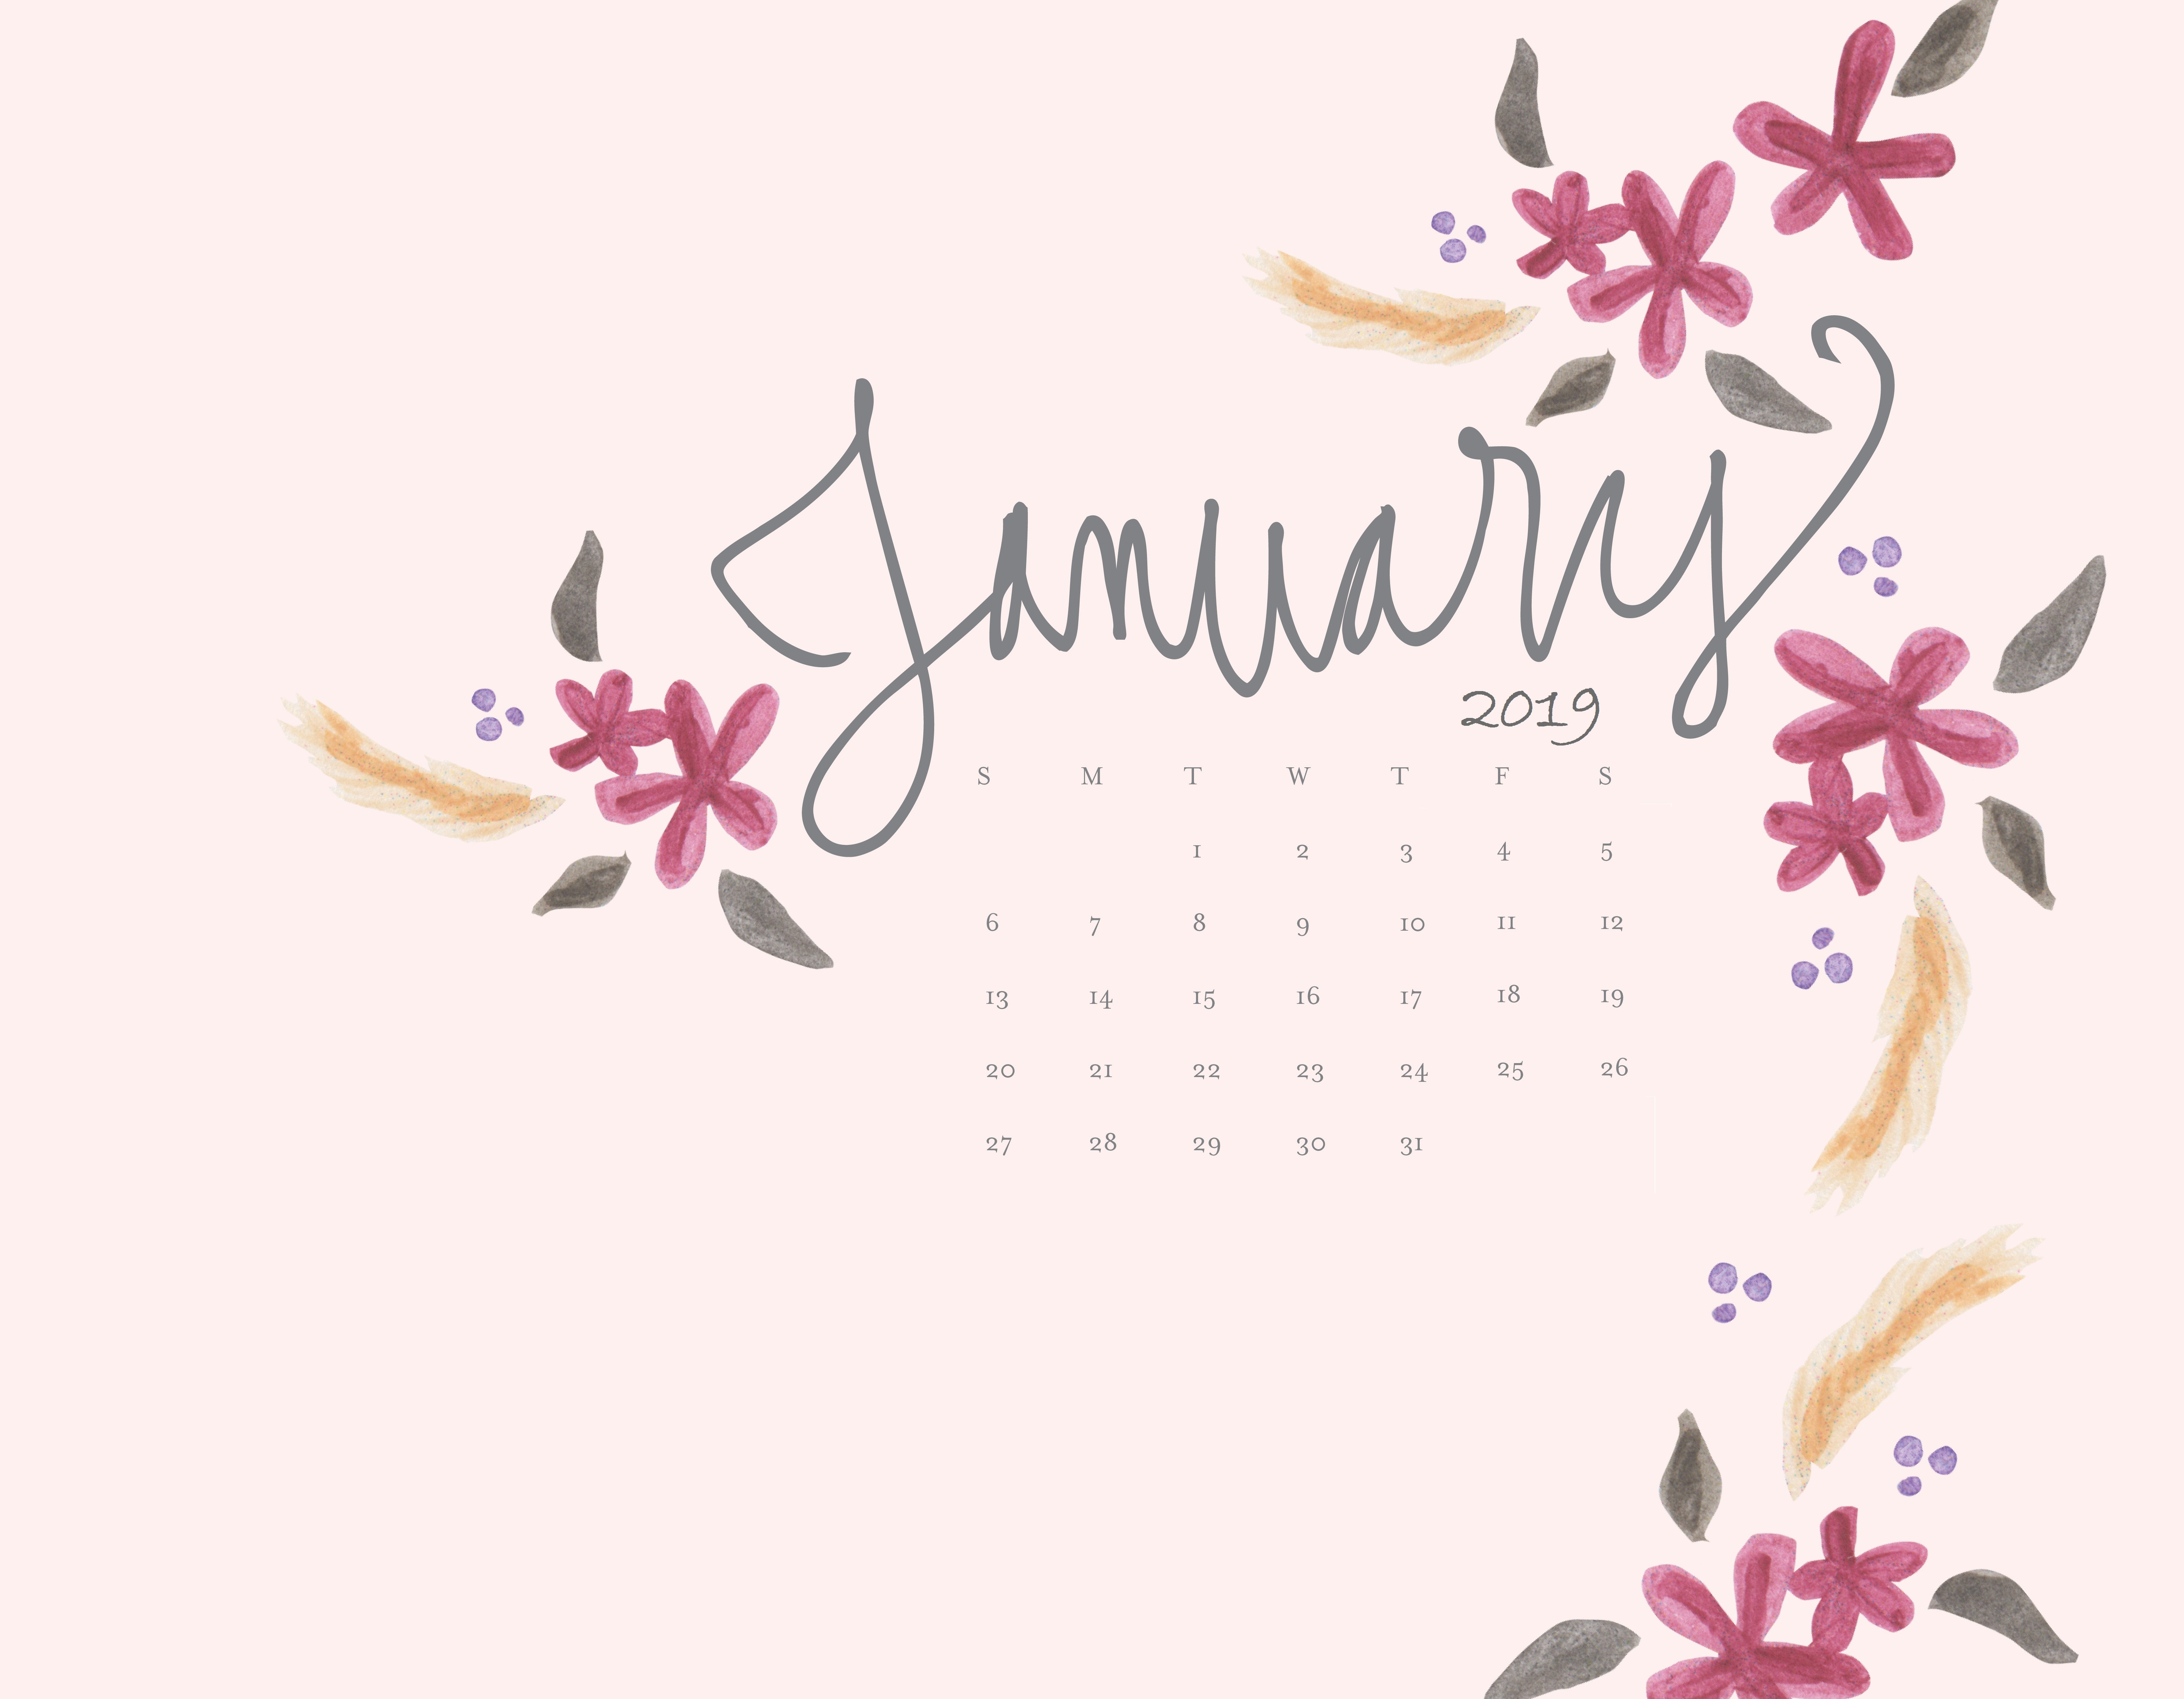 january 2019 hd calendar wallpapers calendar template printable::January 2019 Calendar Templates